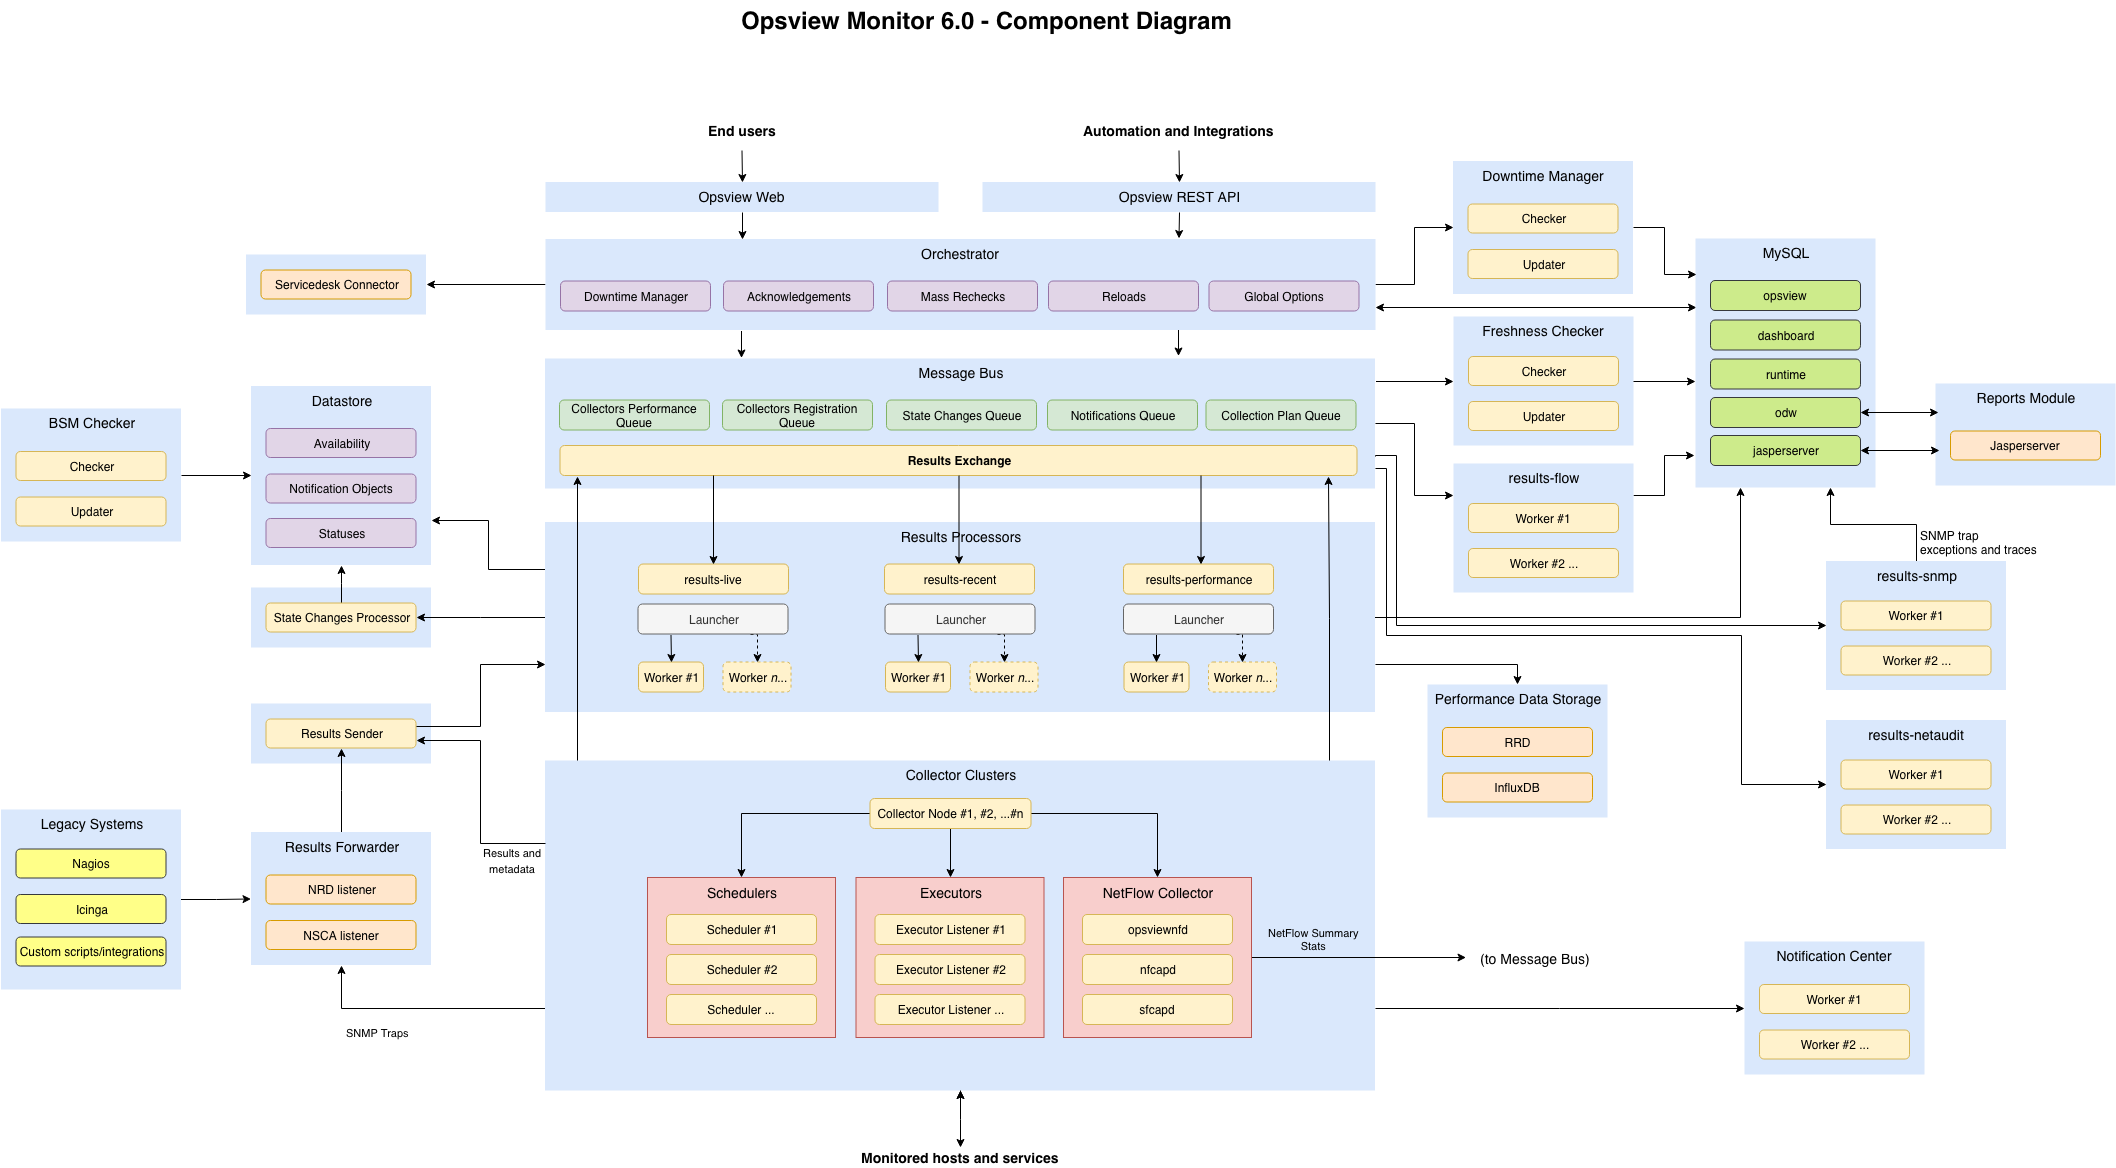 Detailed diagram of Opsview Monitor 6.0 Microservices